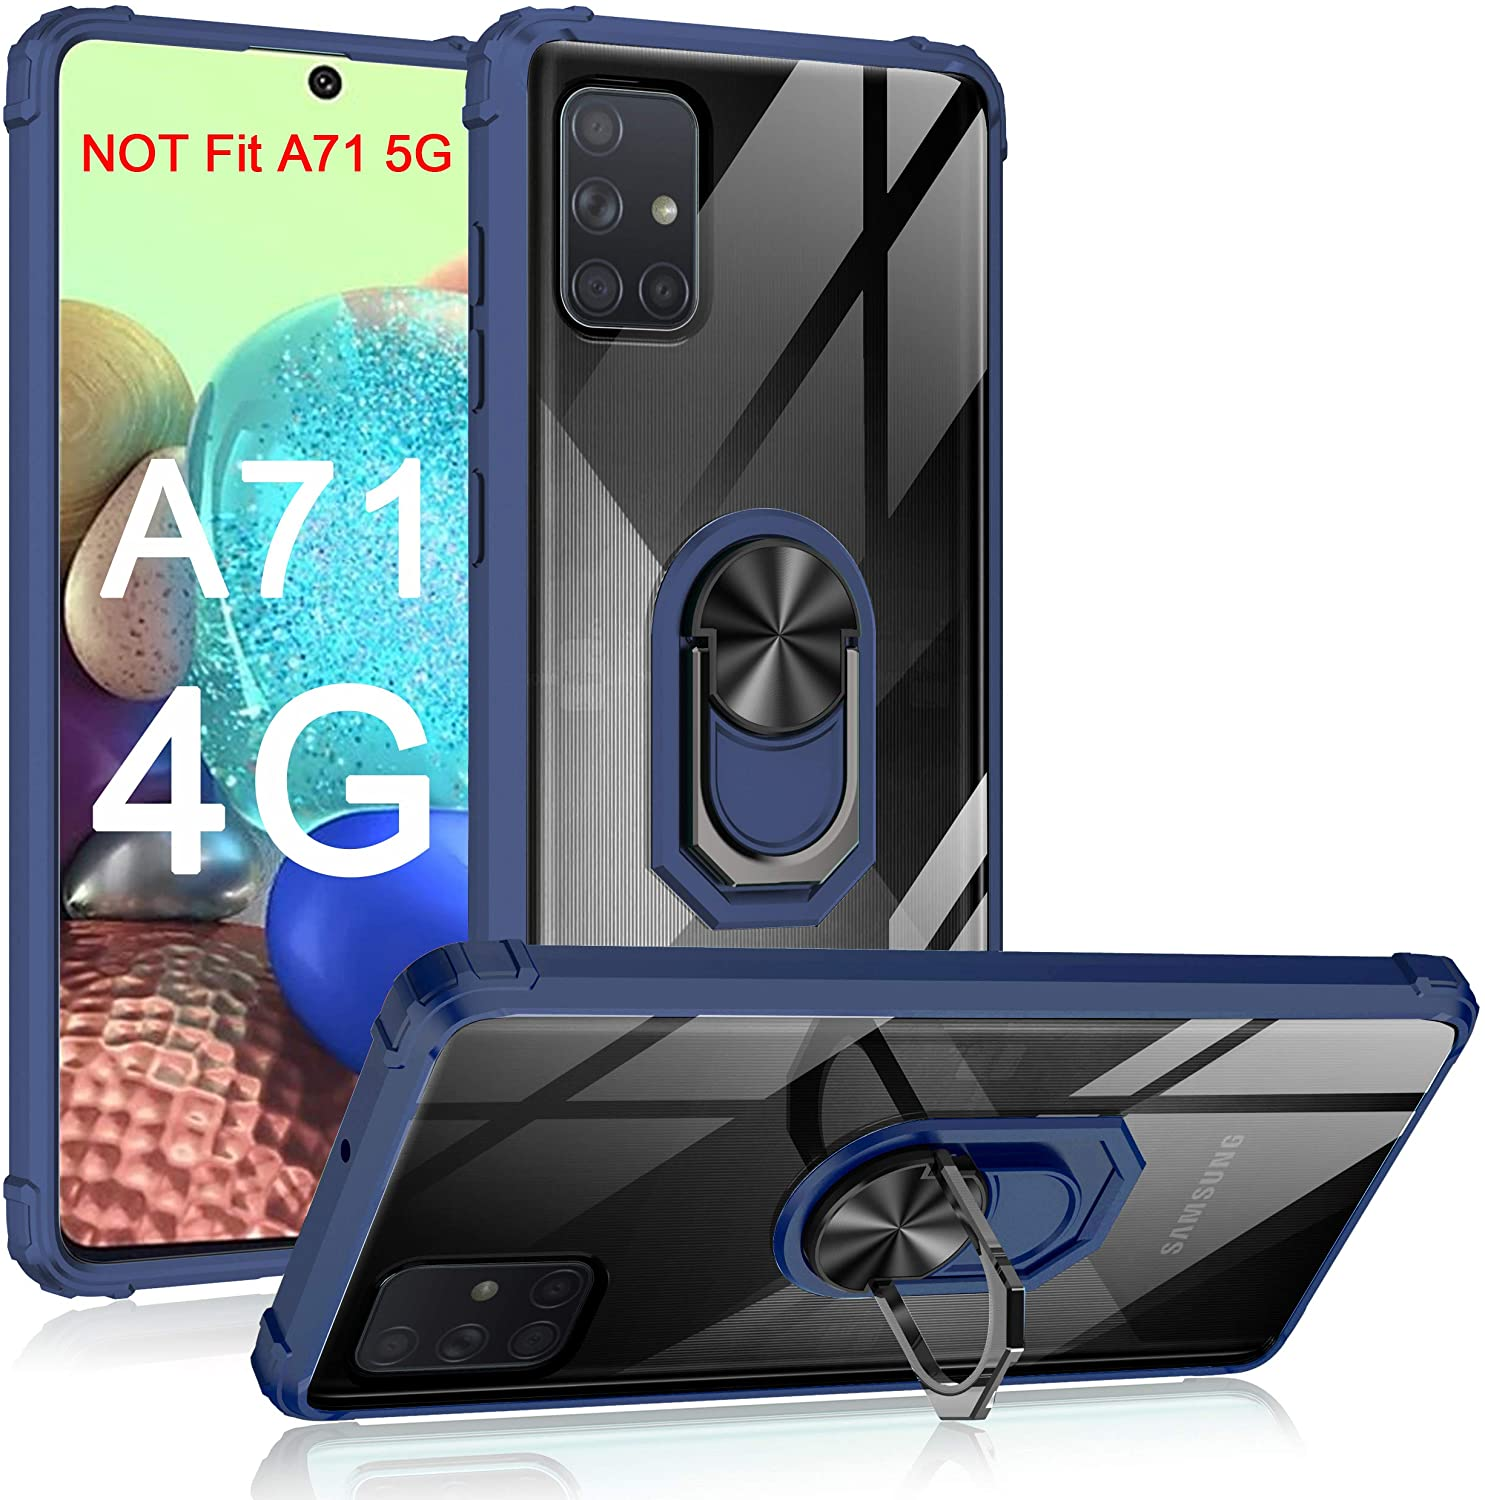 Samsung Galaxy A71 Case 4G Version, Military Grade Transparent Clear PC Back Shockproof TPU Rubber Rugged Armor Phone Case with Magnetic Ring Car Kickstand for Samsung A71 4G (Navyblue)